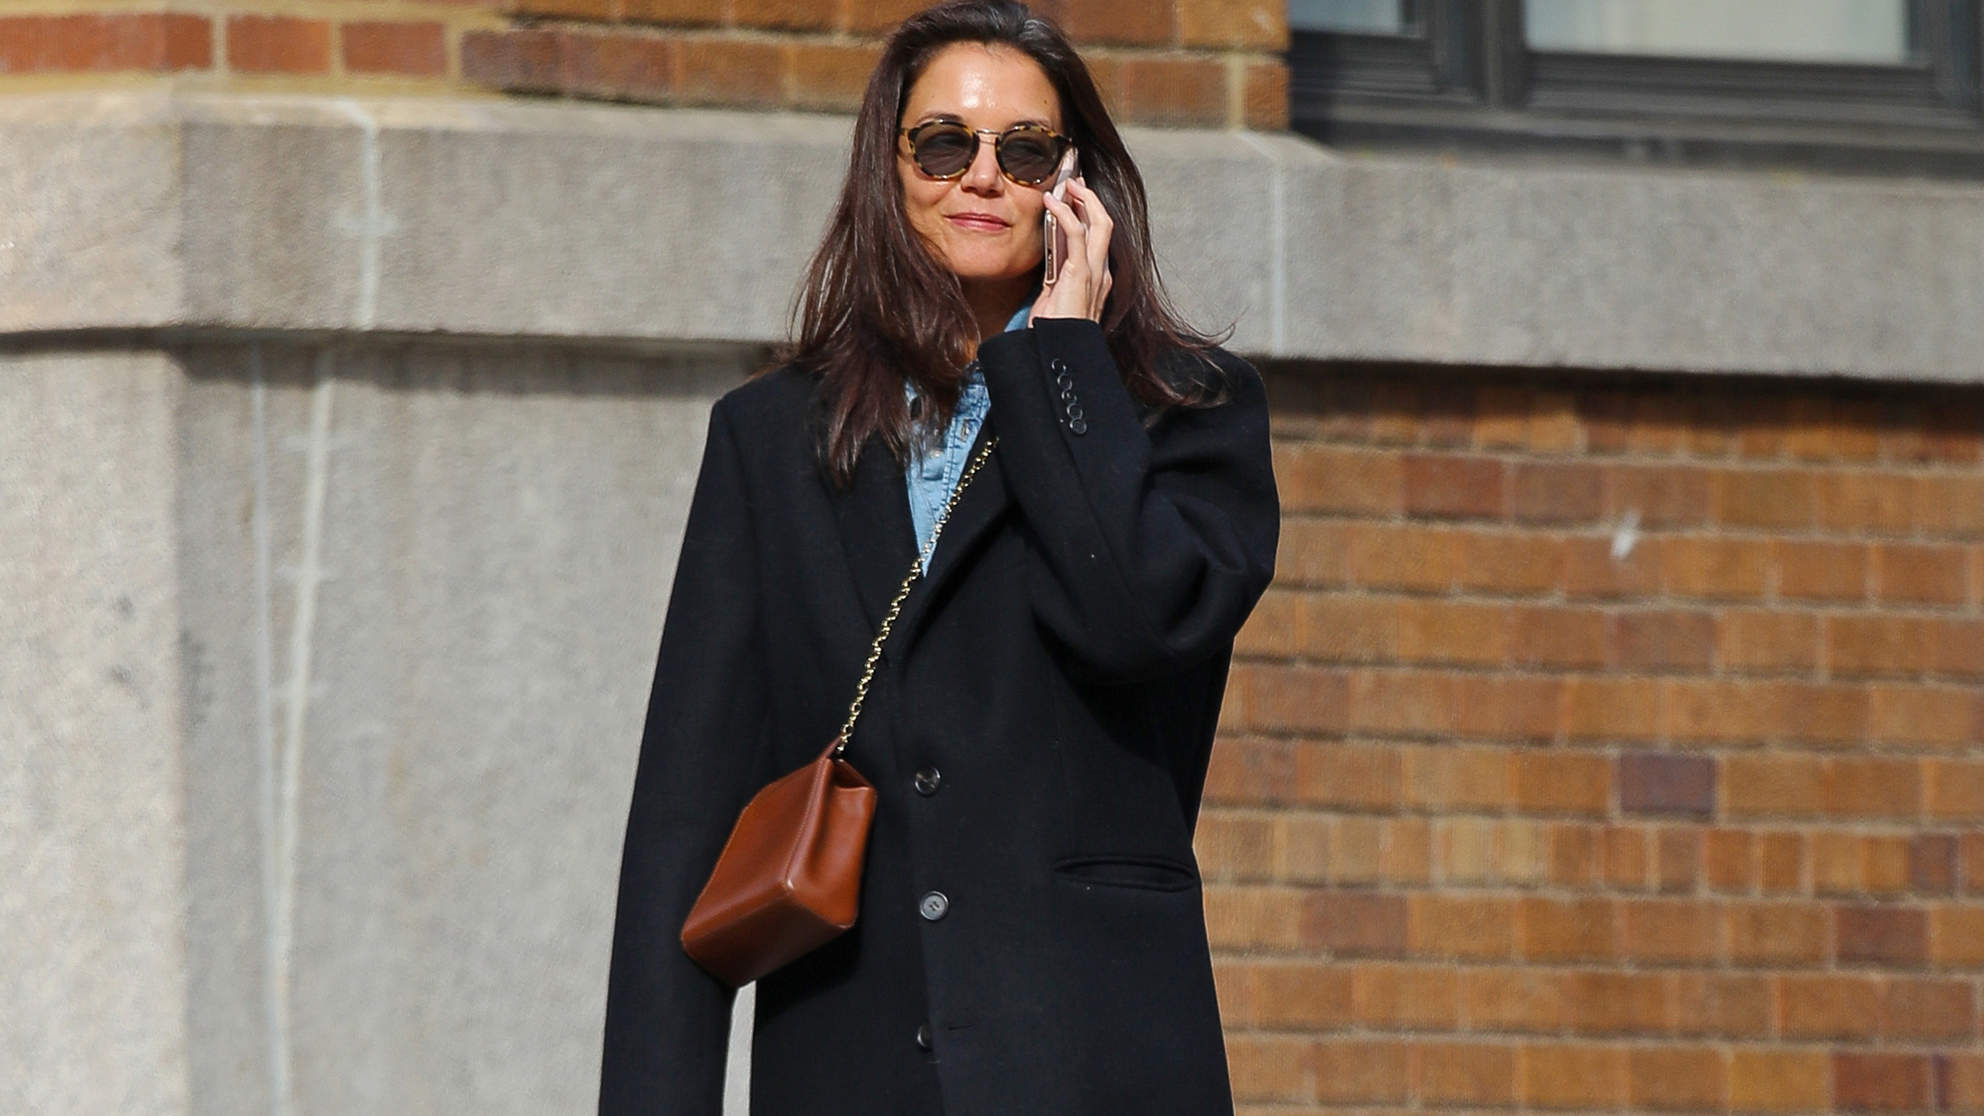 Katie Holmes's Affordable Sneakers Are the Star of Her Latest Street-Style Look